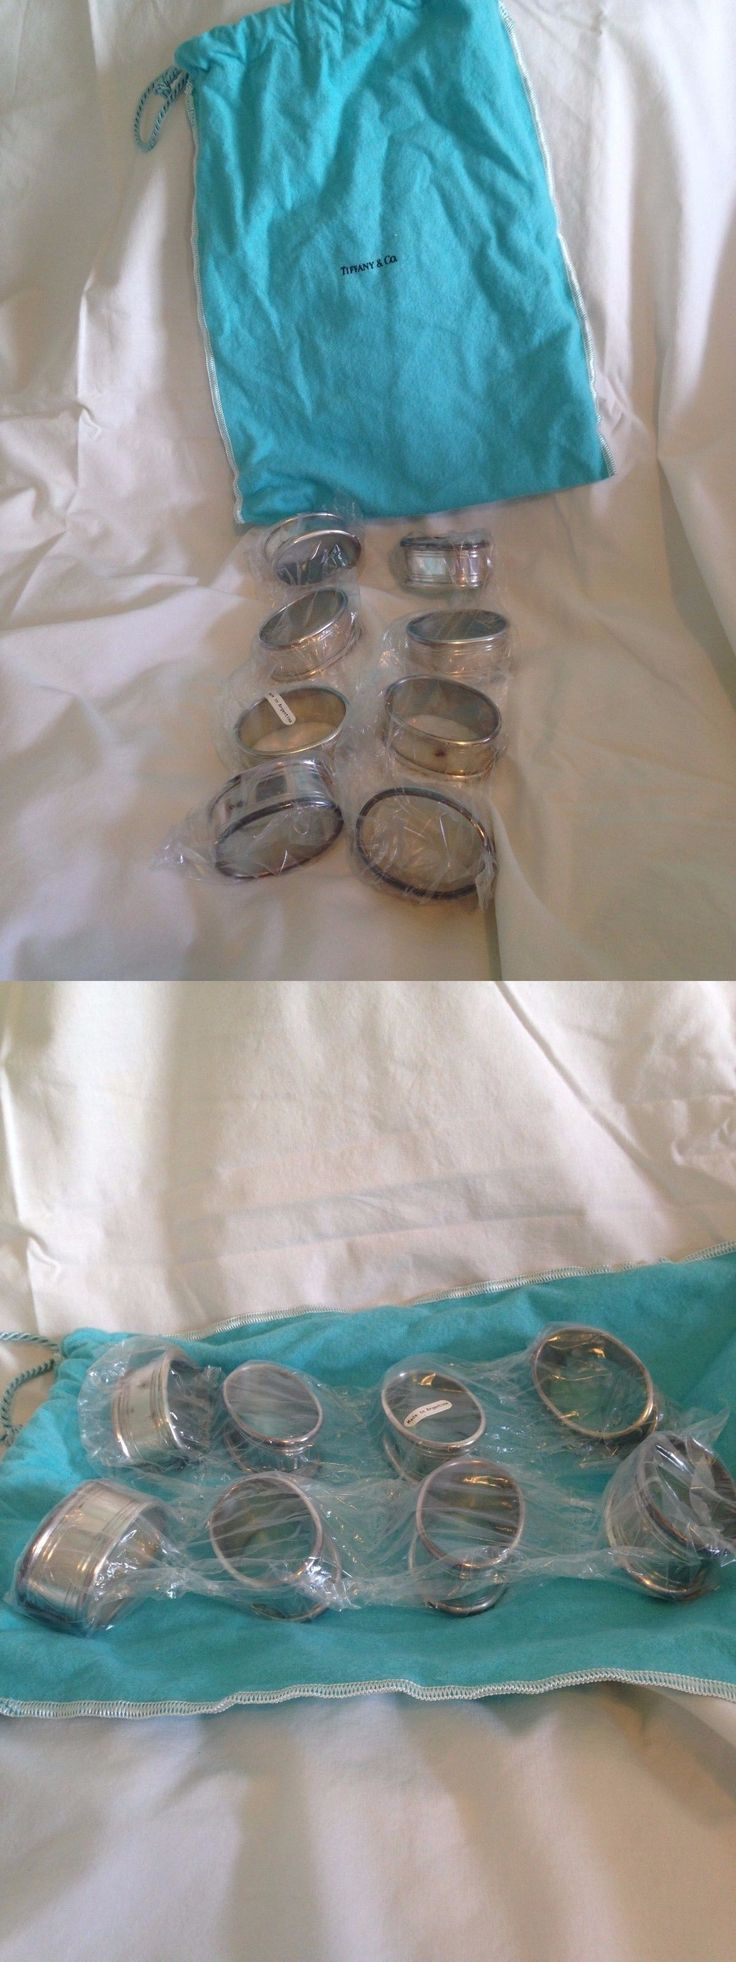 Napkin Rings and Holders 20658: Lappas Sterling Silver Napkin Rings -- Vintage, Original Packaging! -> BUY IT NOW ONLY: $125 on eBay!